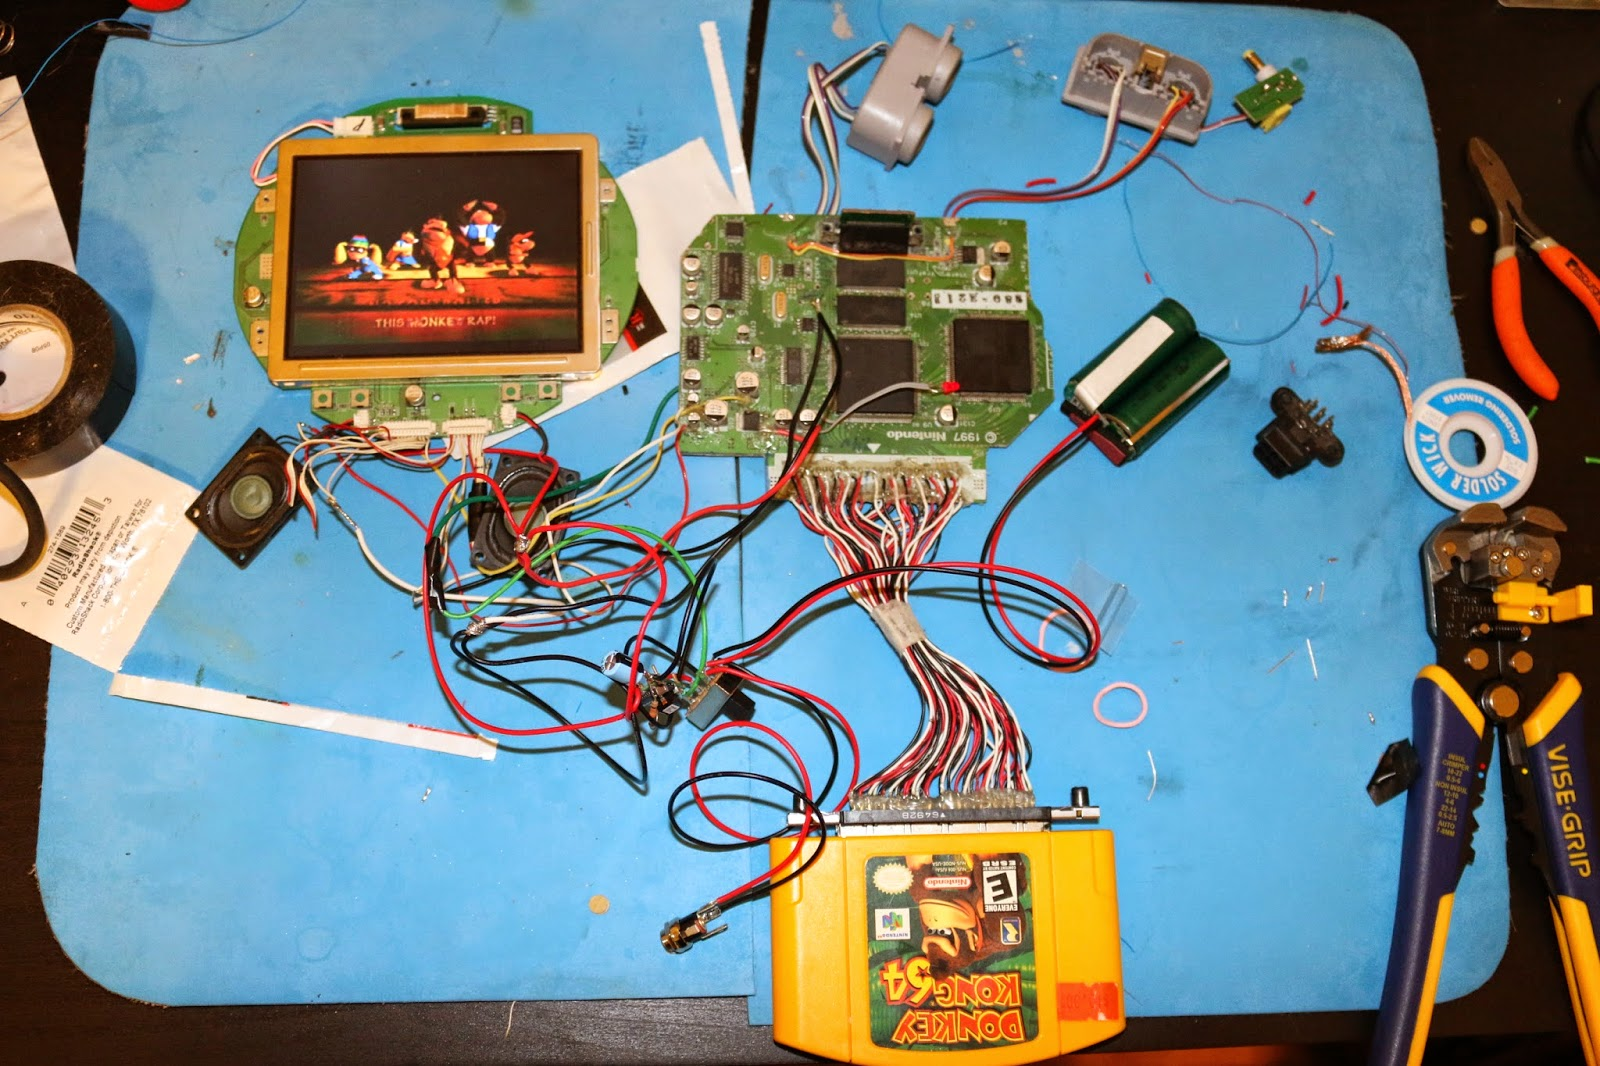 hight resolution of n64 portable anthony thomas img 0528 n64 wiring diagram